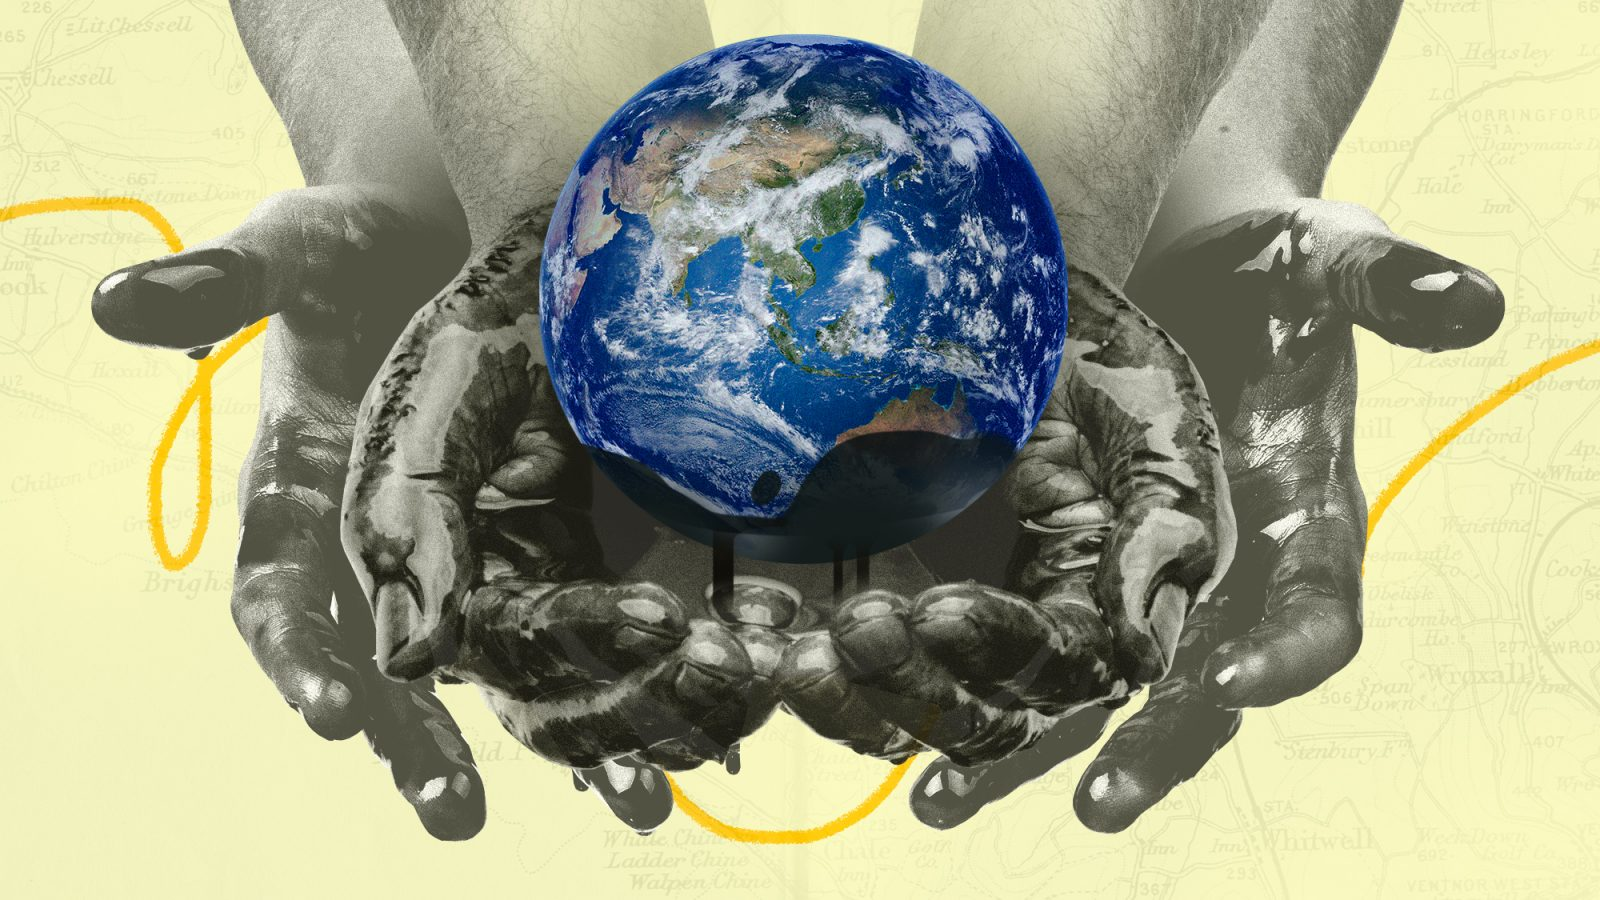 The key to beating fossil fuel corps? Global collaboration.